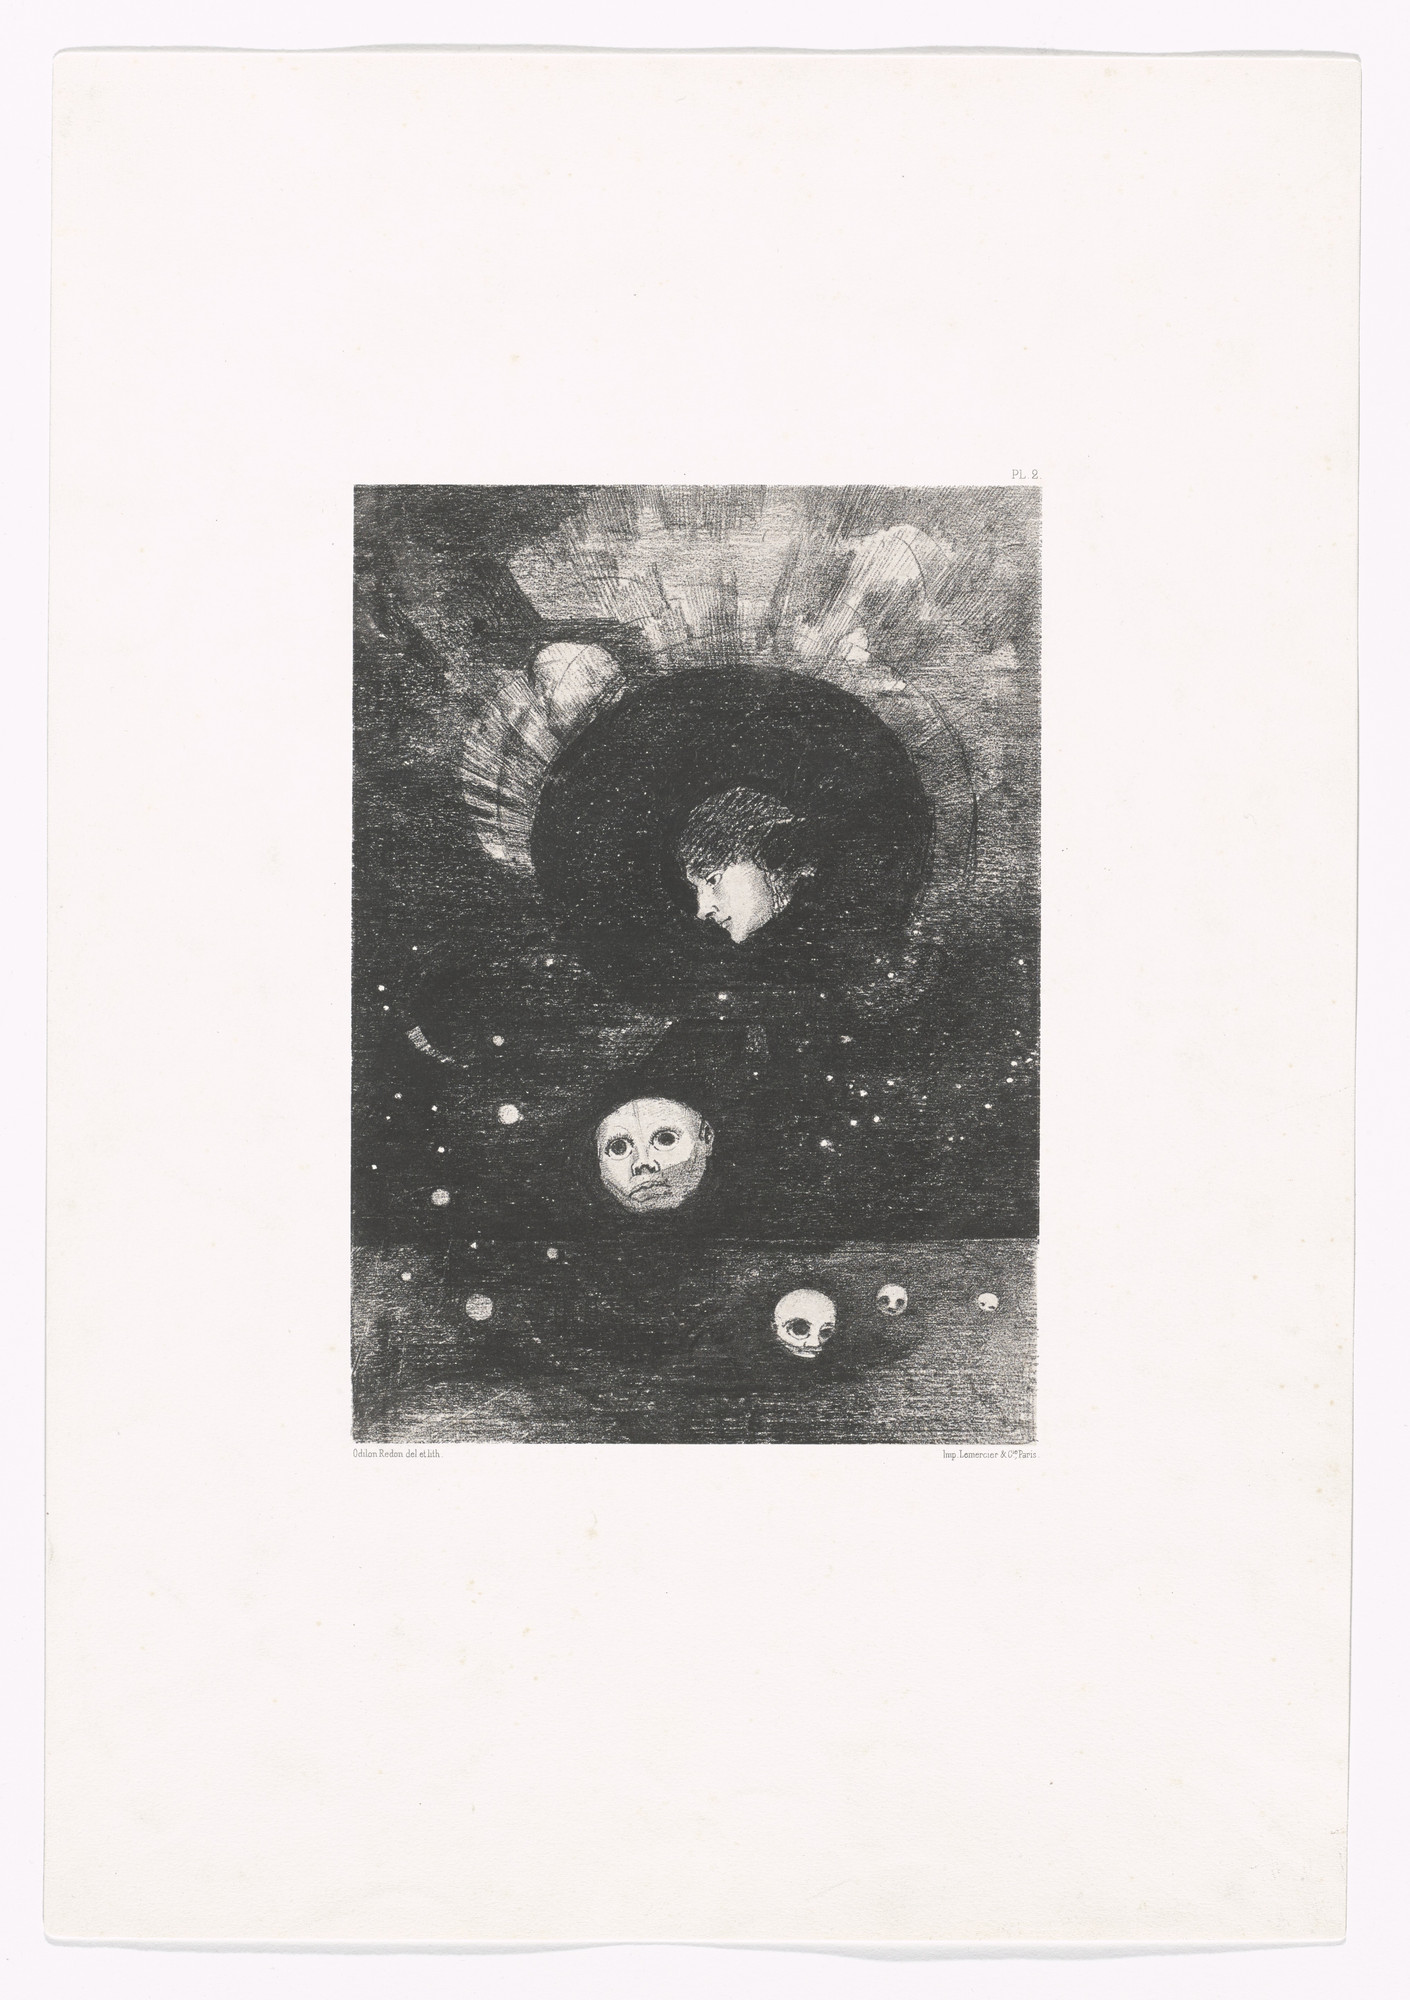 Odilon Redon. Germination from In the Dream (Dans le rêve). 1879